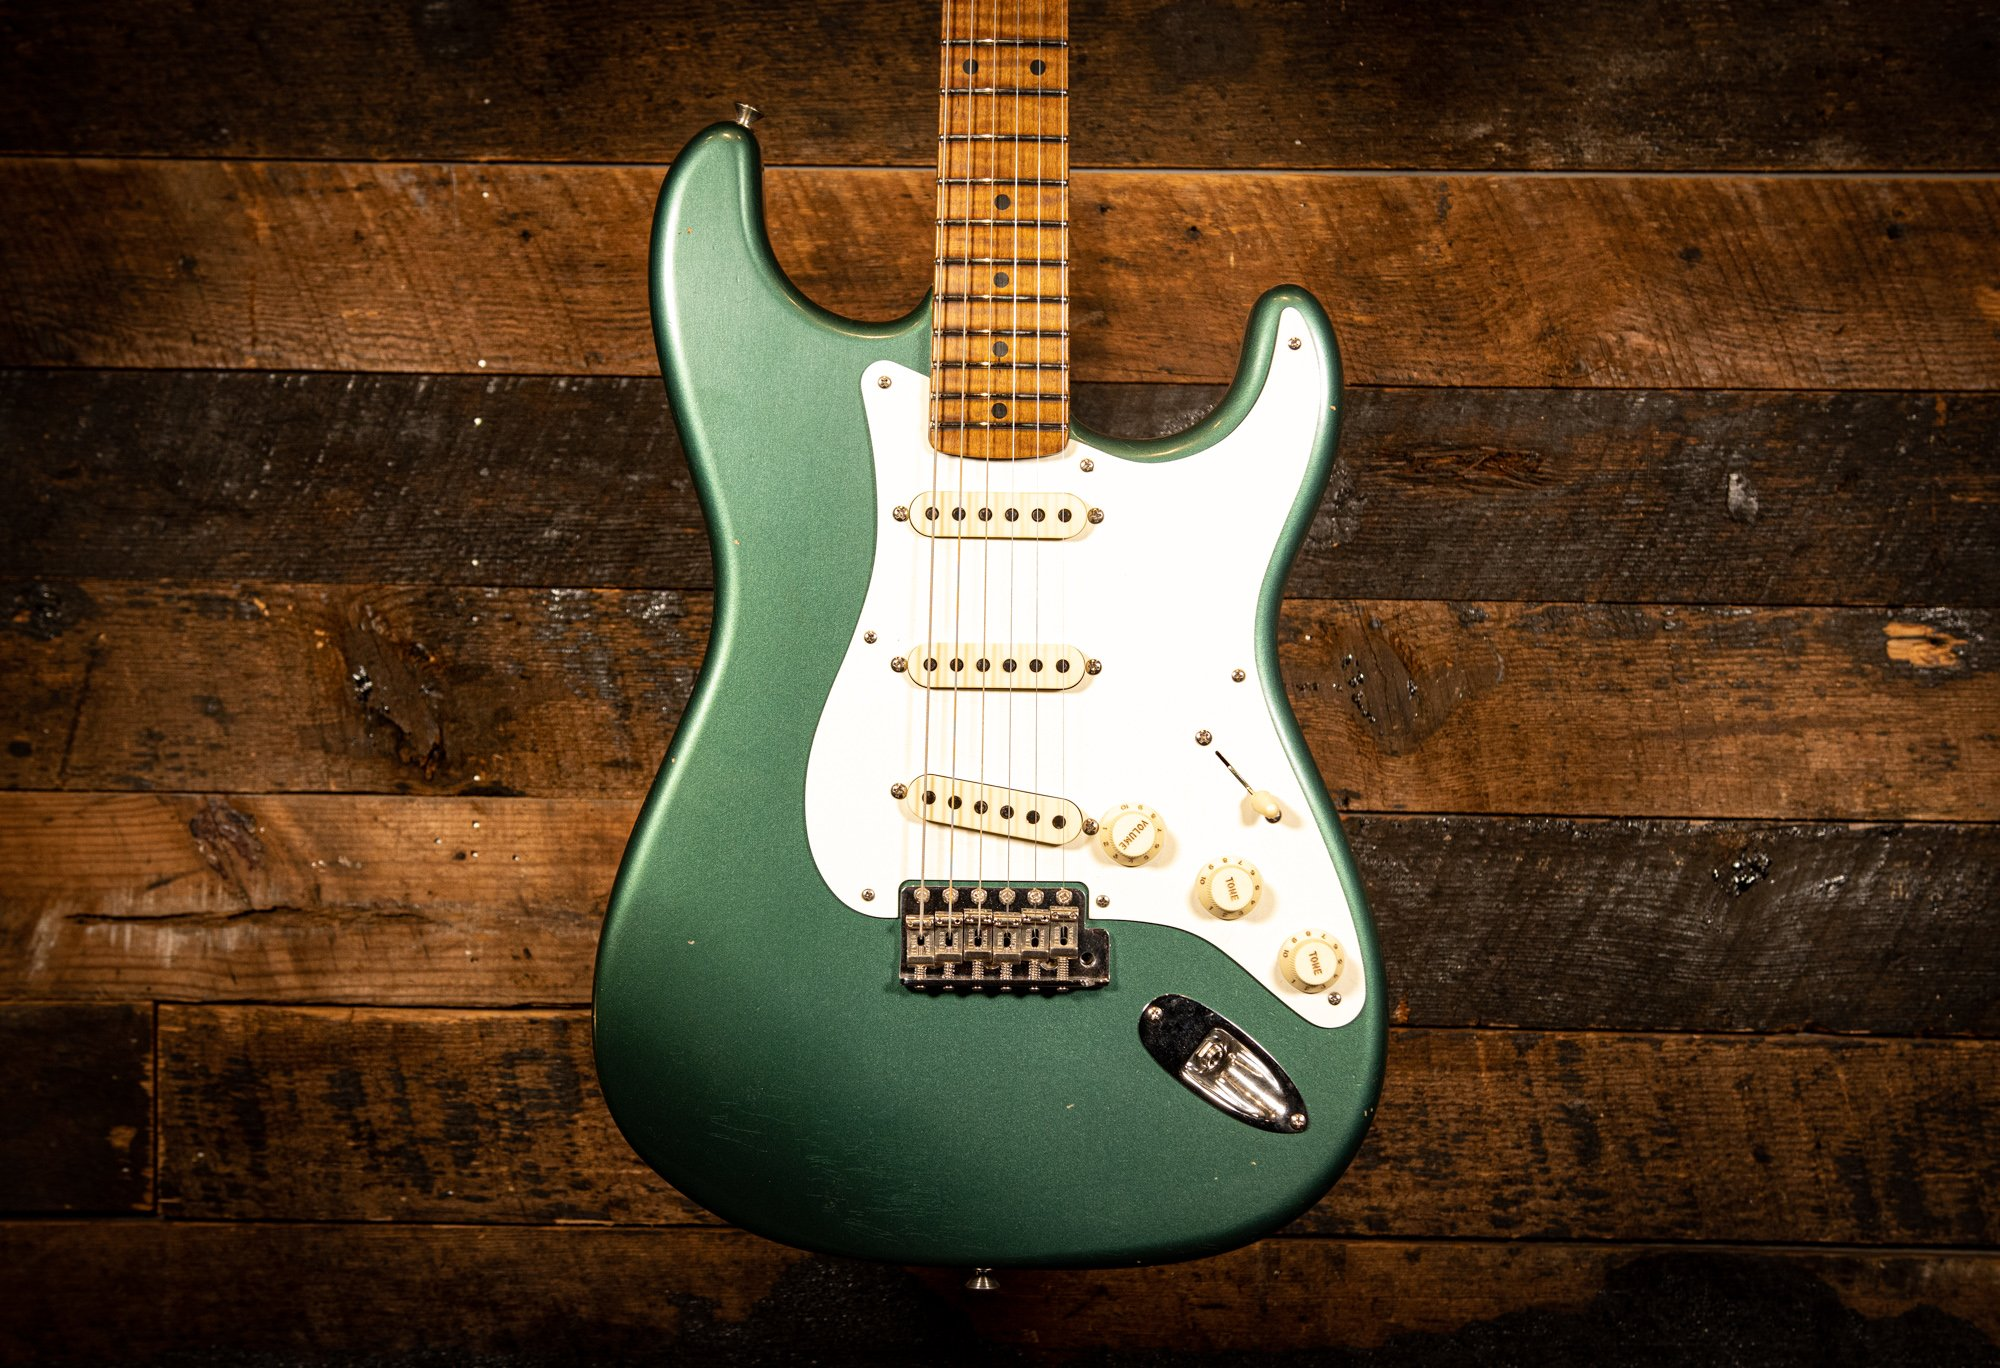 Fender Custom Shop limited 1958 Stratocaster Journeyman Relic in Sherwood Metallic